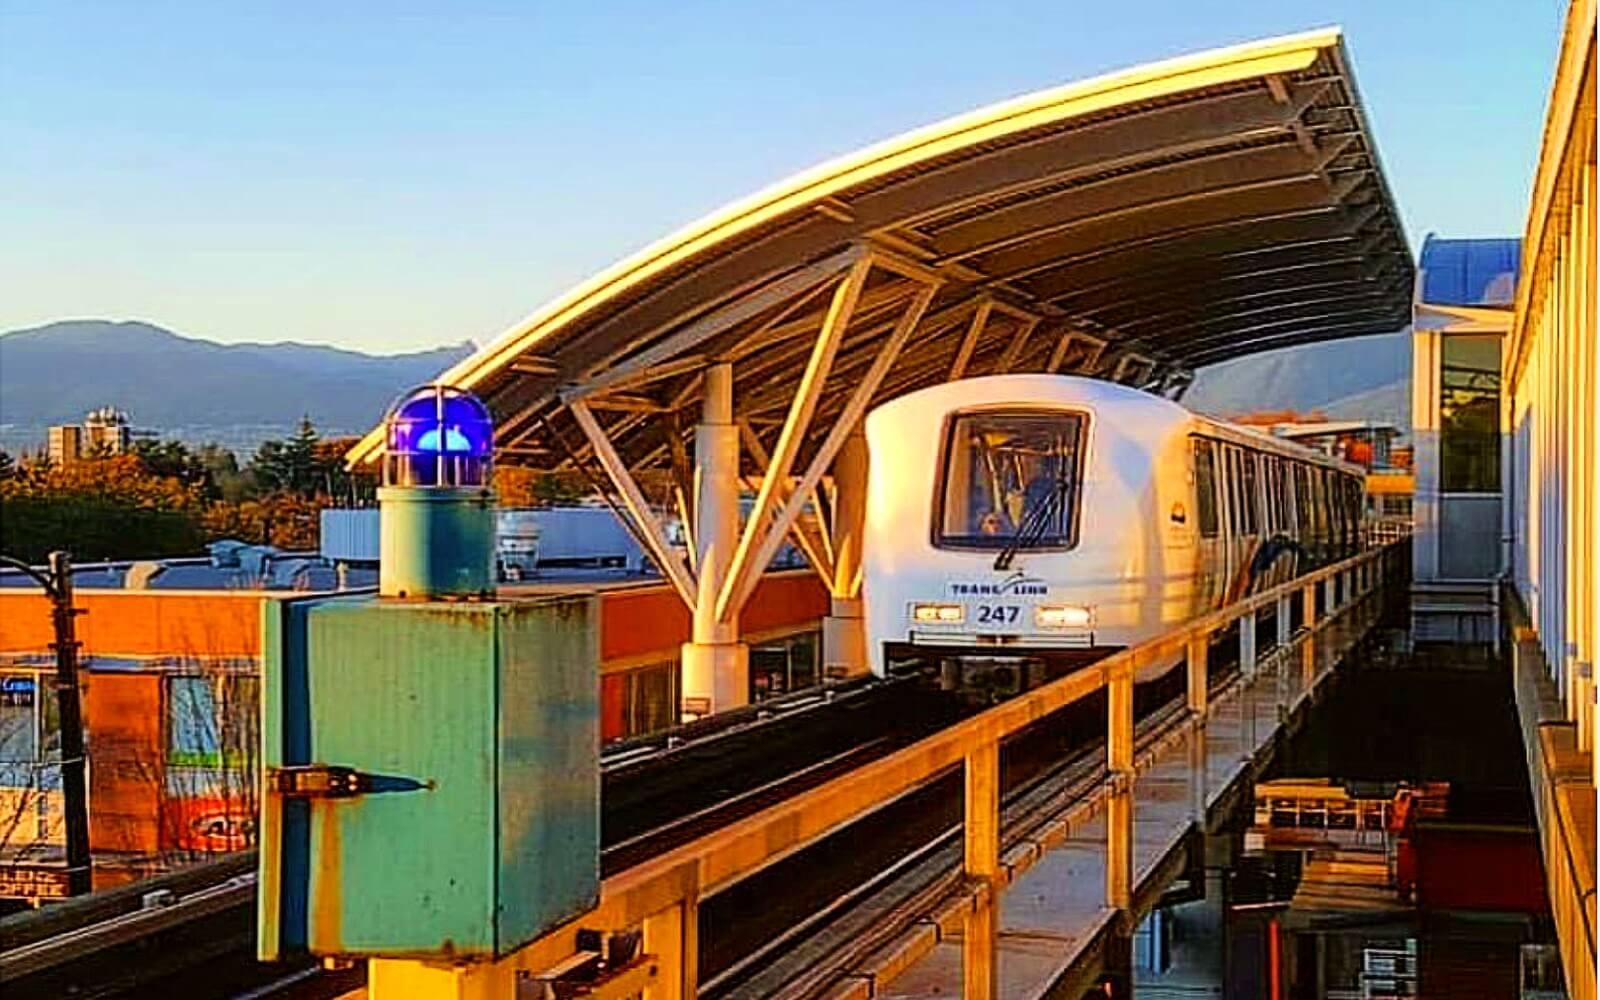 skytrain arrives at a station in vancouver canada